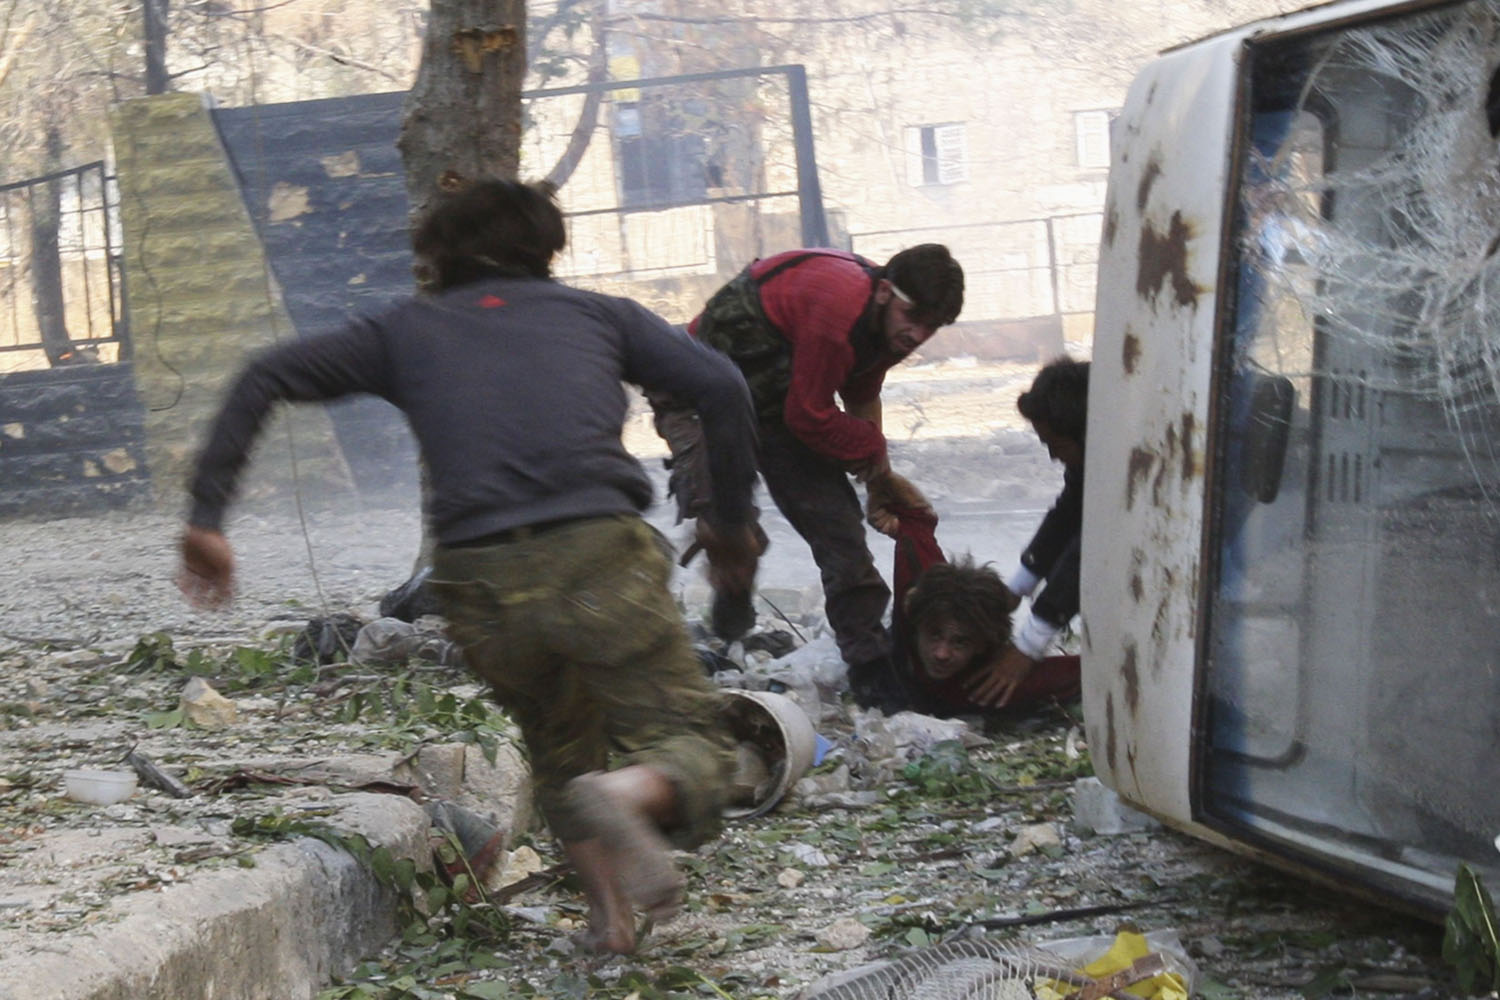 Oct. 9, 2013. Free Syrian Army fighters rush to help their fellow fighter after he was shot by a sniper loyal to Syria's President Bashar al-Assad in Aleppo's Salaheddine neighborhood.